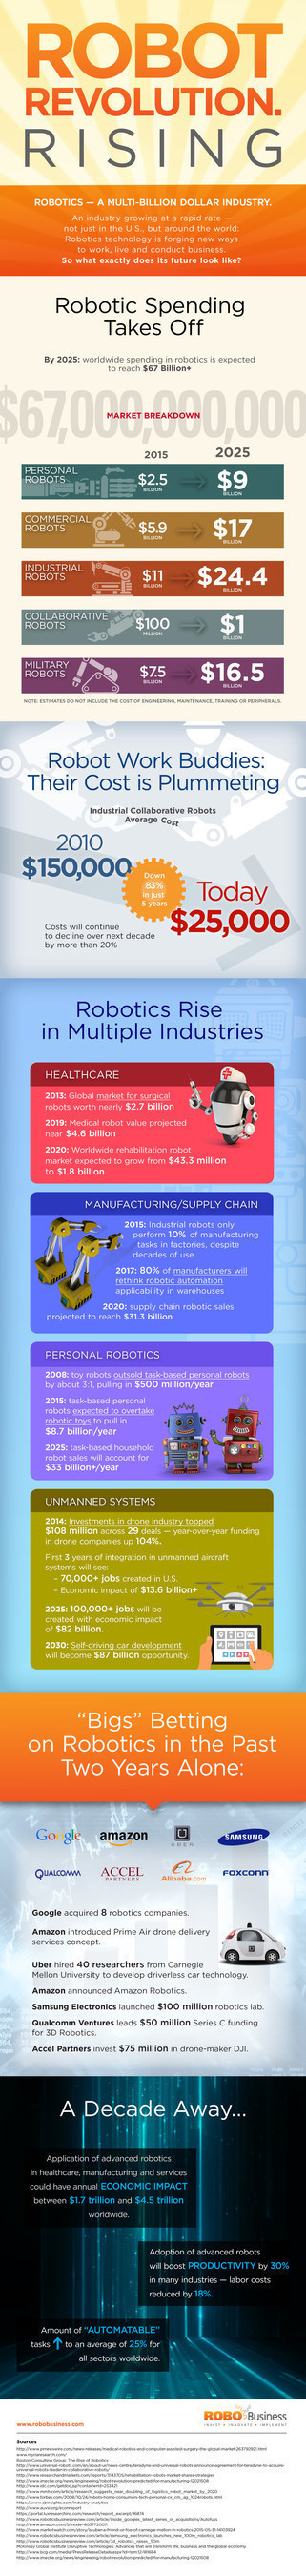 The data is undeniable: Robotics is the future of enterprise. An in-depth look at the numbers behind the ...